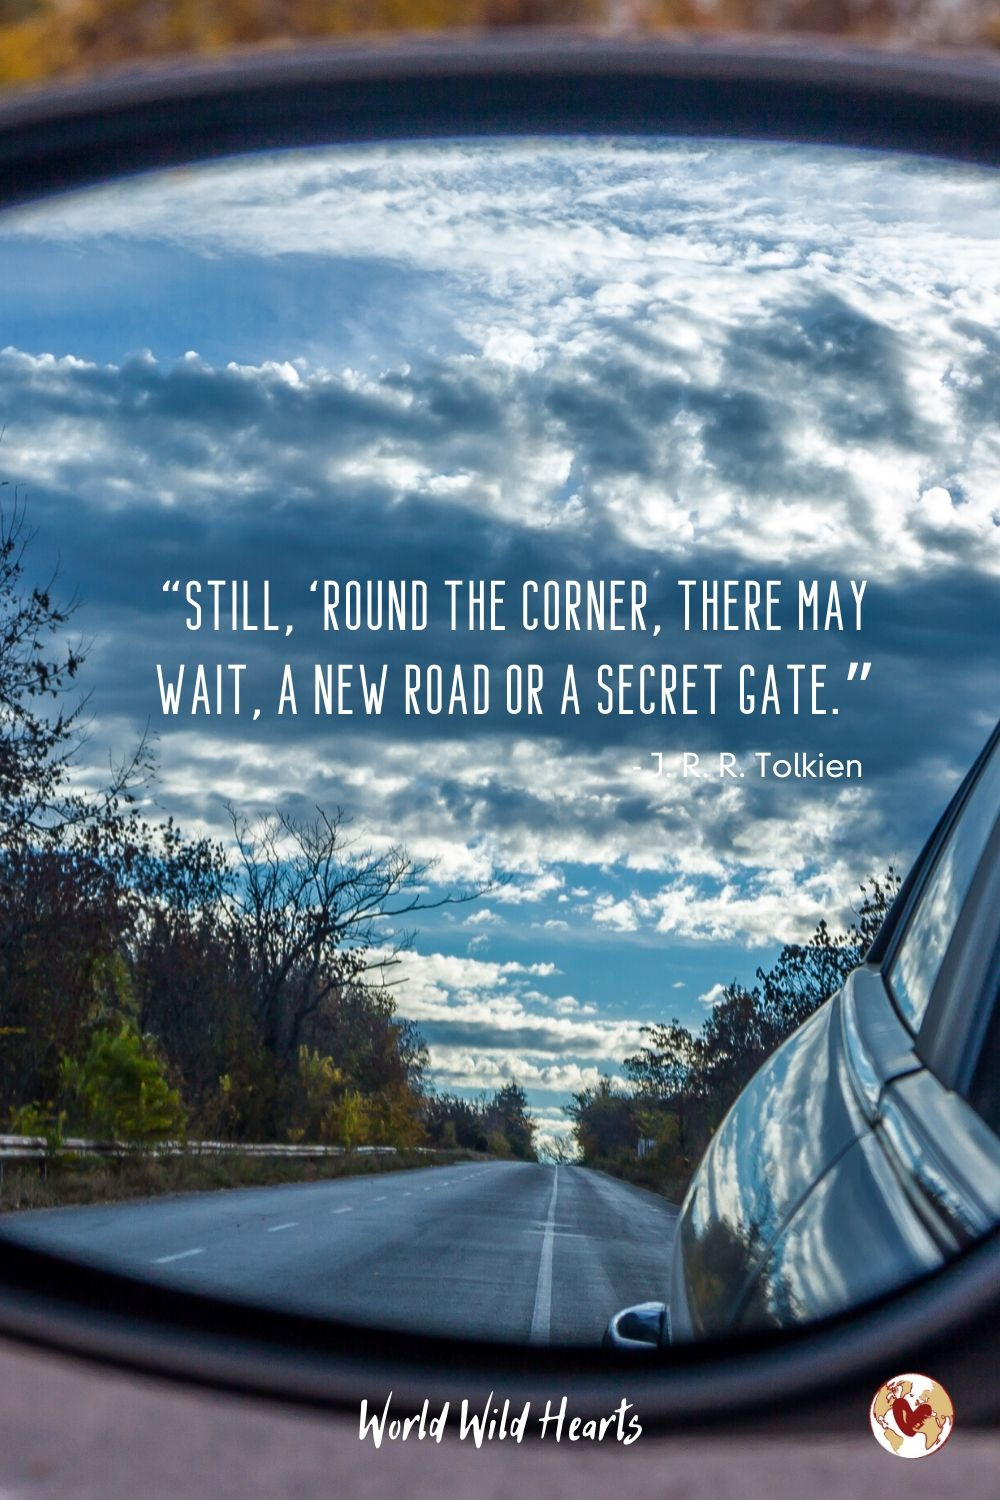 Famous road trip quote